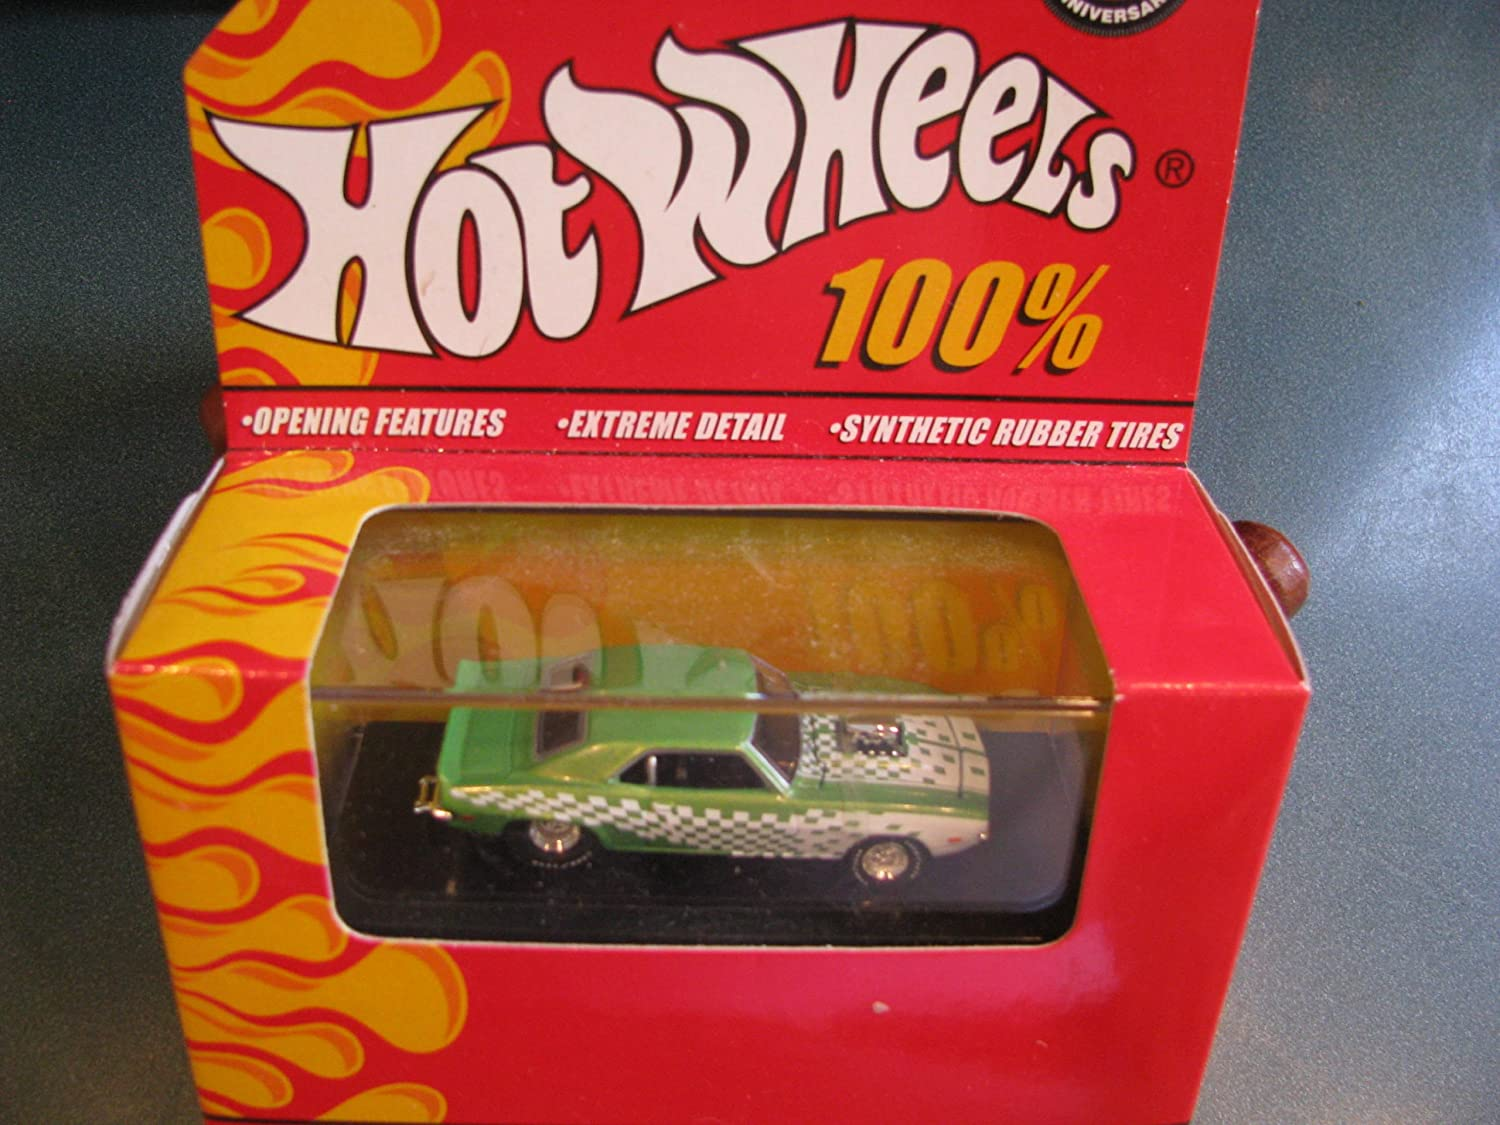 Hot Wheels Hotwheels 40th Anniversary Opening Features Extreme Detail 1969 69 Street Camaro With Hard Acrylic Display Case 1/64 Scale Mattel by Mattel: Amazon.es: Juguetes y juegos